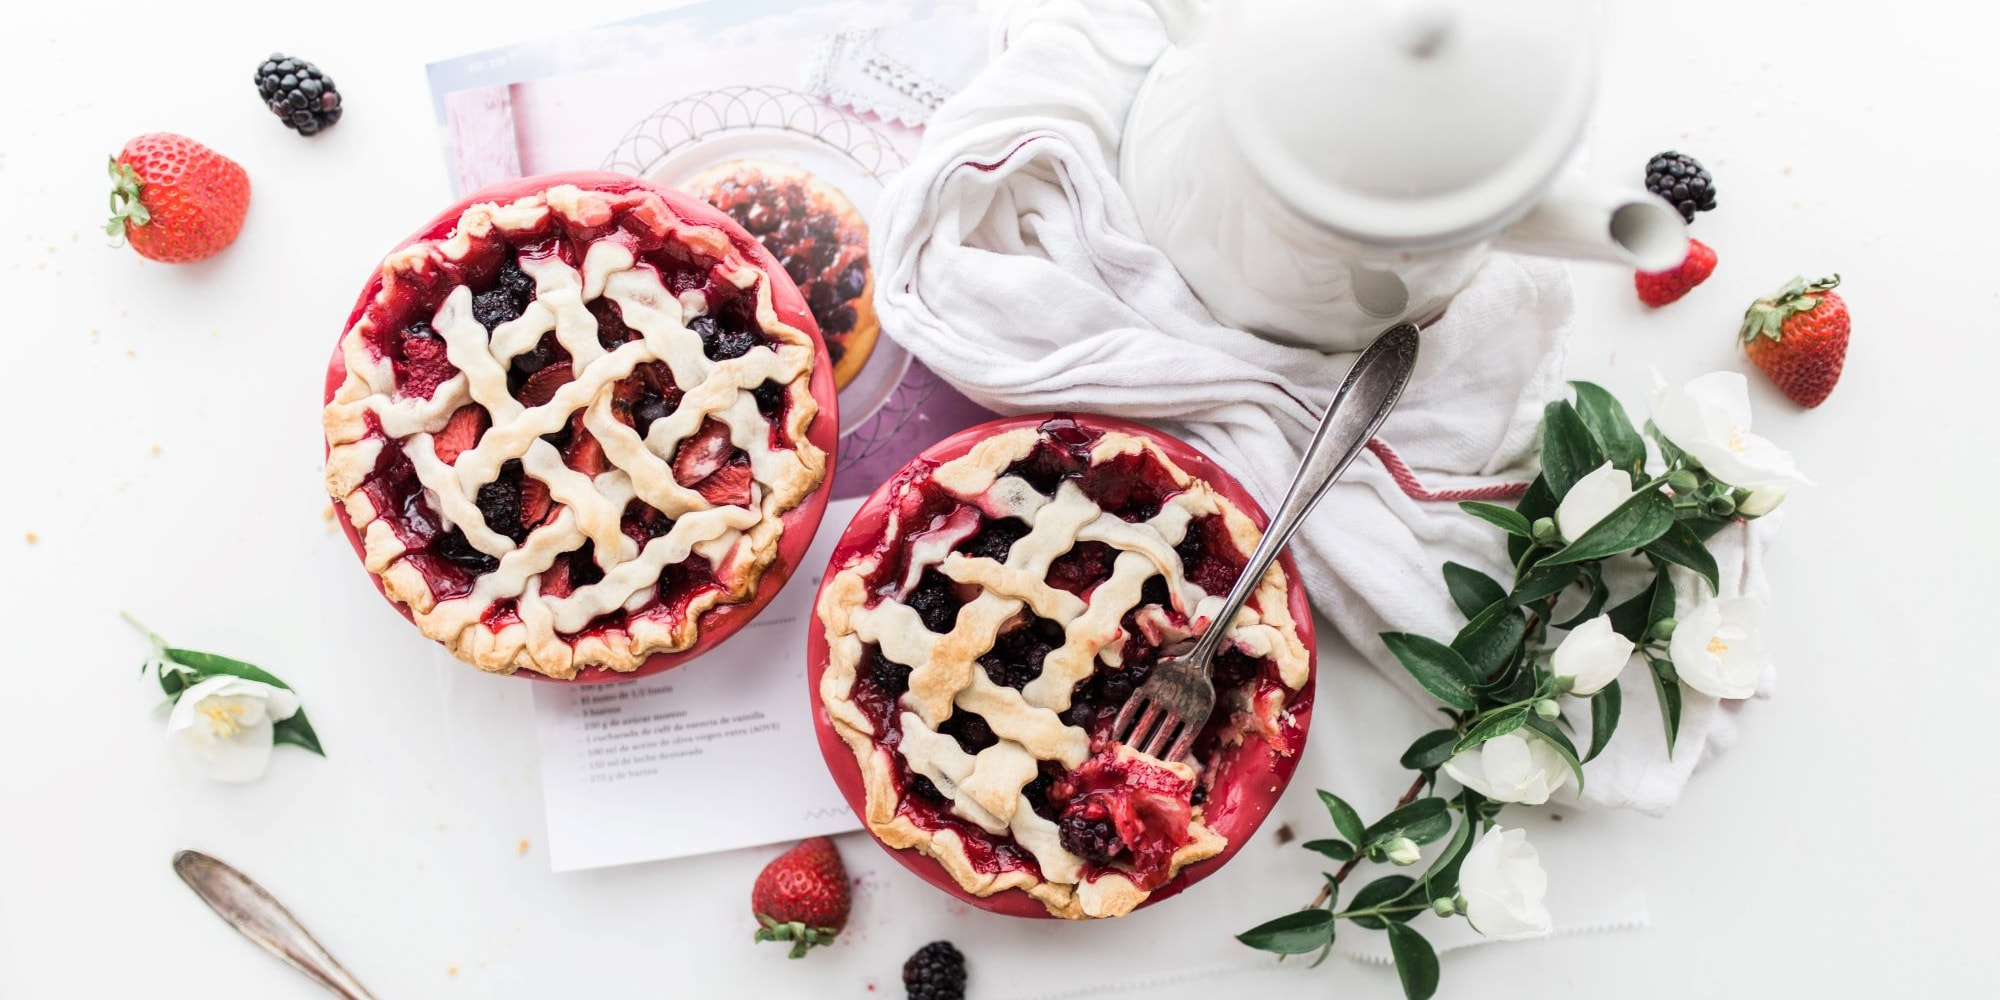 two raspberry pies on top of white table